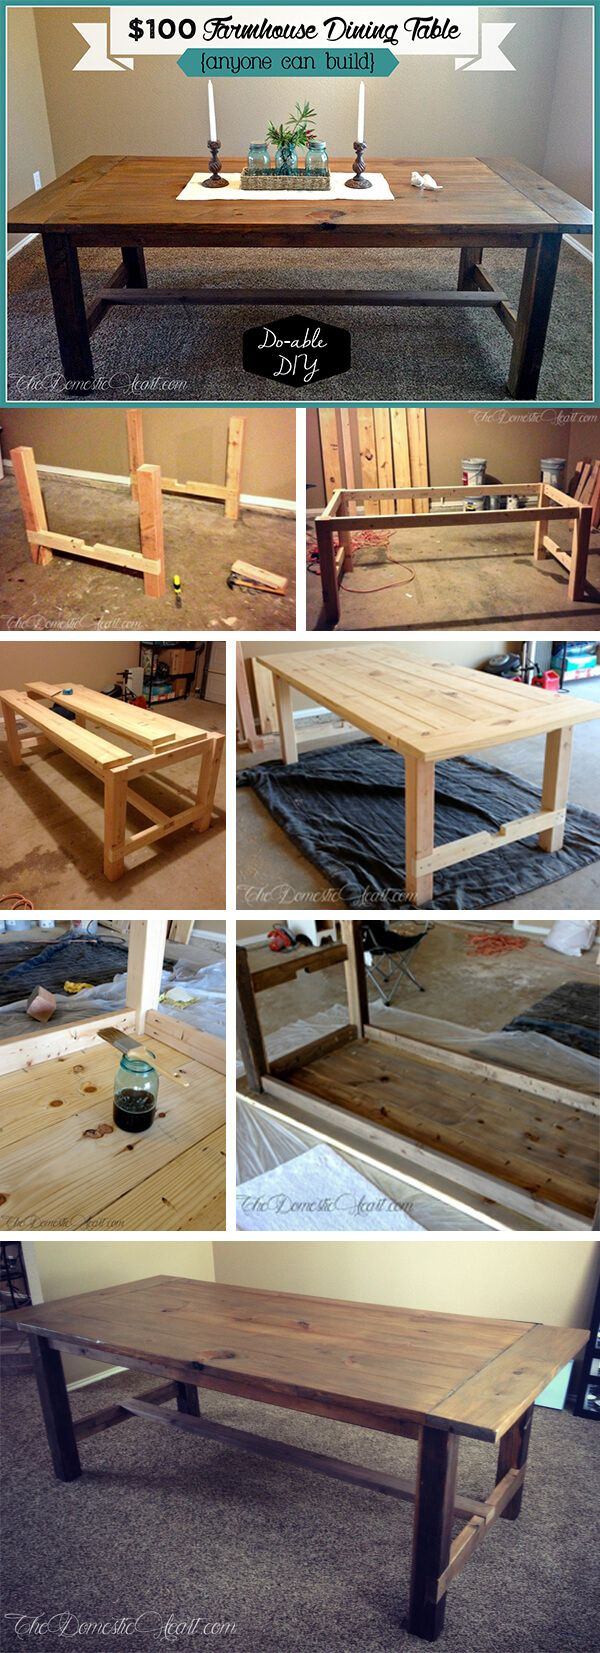 17 rustic DIY farmhouse table ideas to bring land into your home #bauer ...